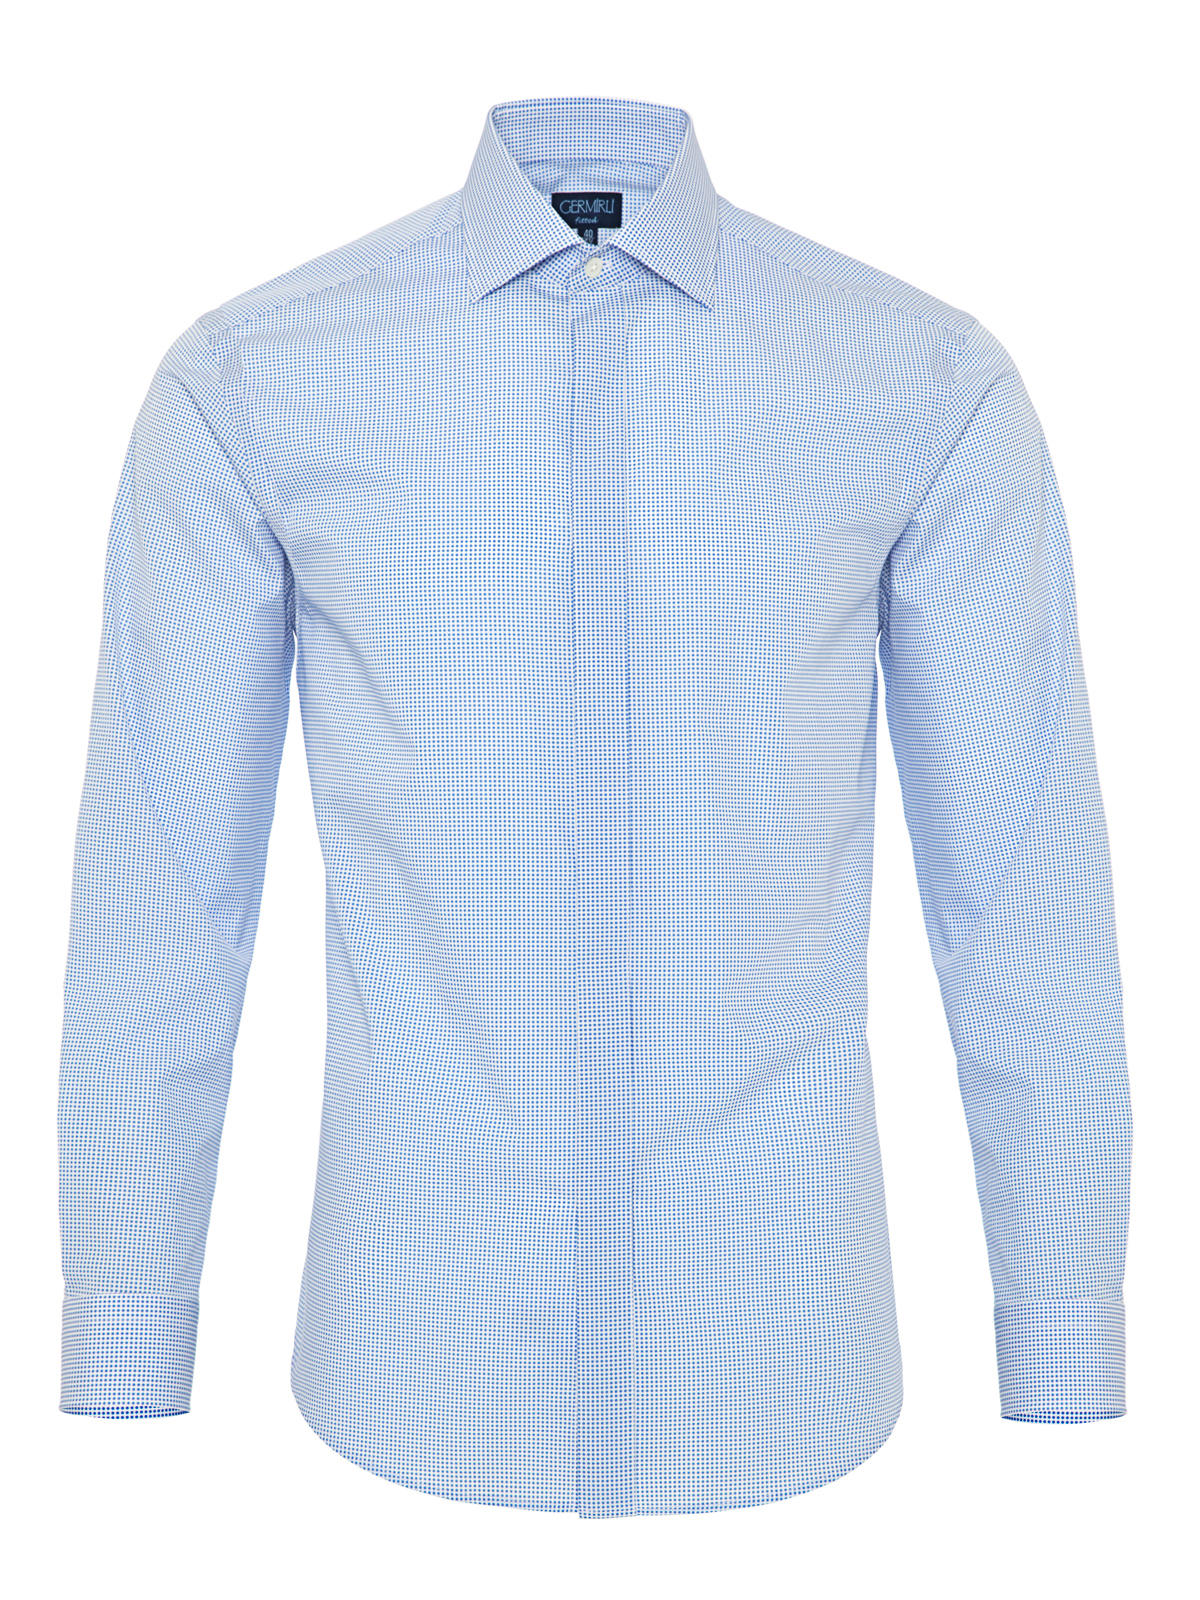 Germirli Blue White Spotted Semi Spread Tailor Fit Shirt